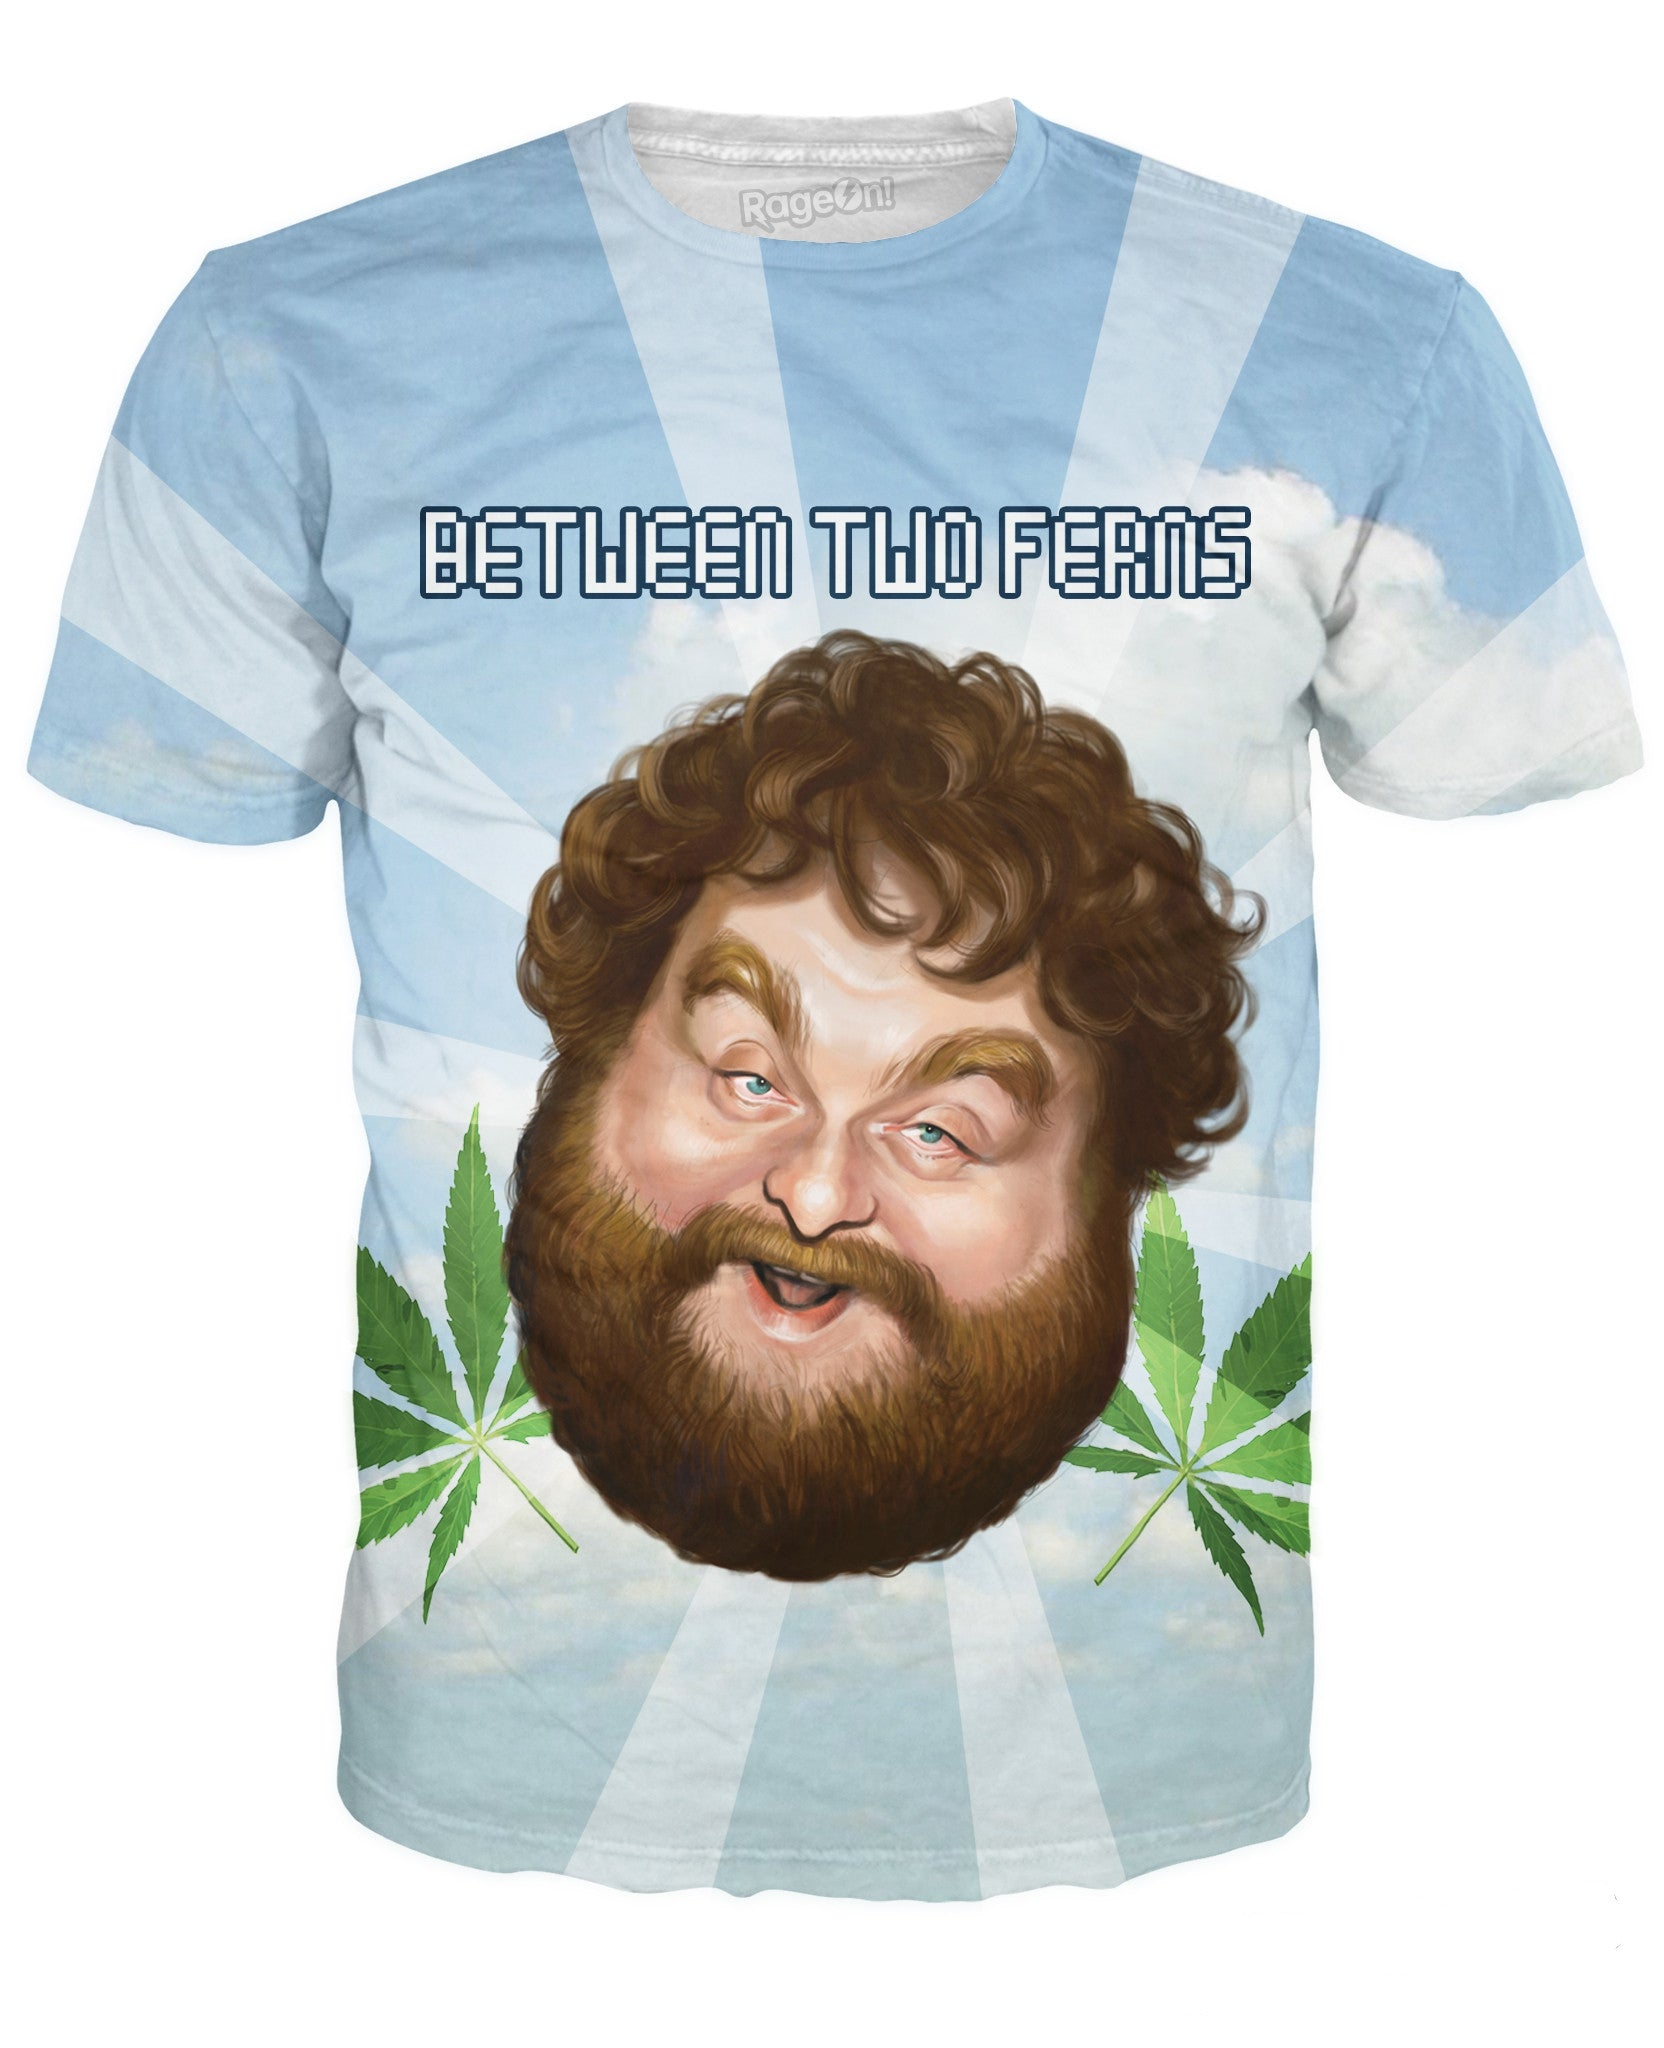 Between Two Ferns T-Shirt